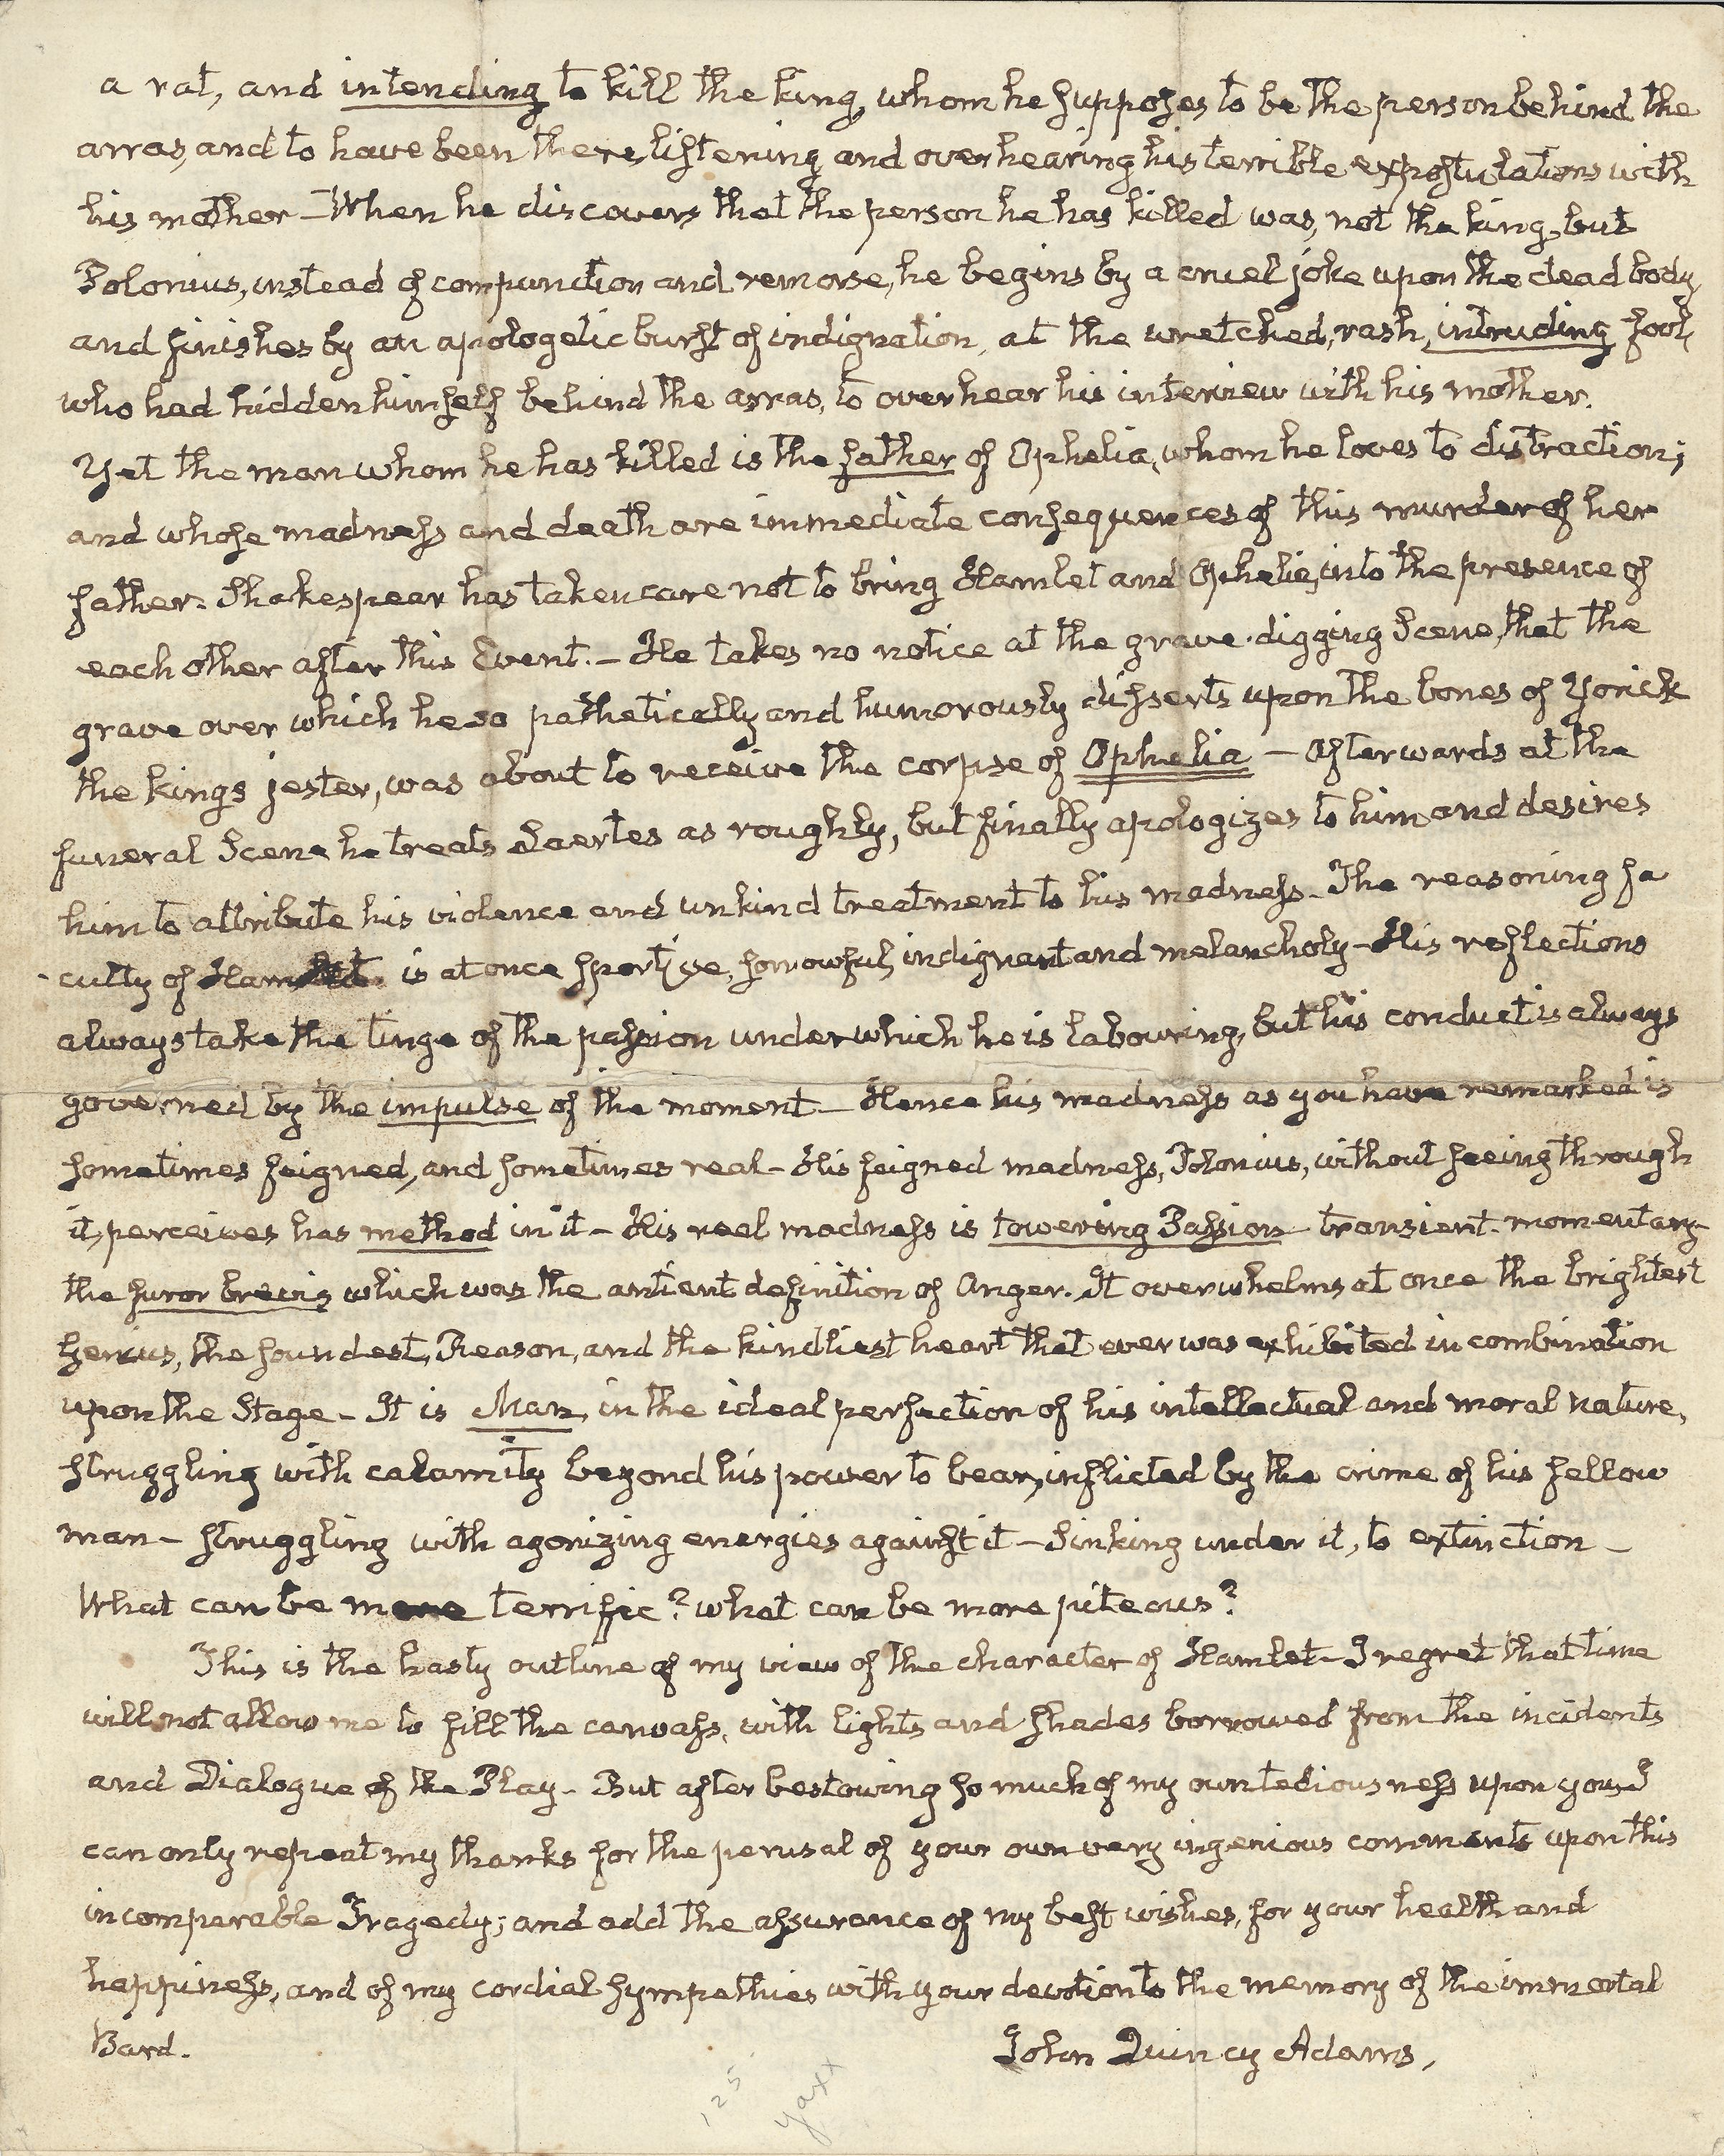 a letter to hamlet Hamlet relays to horatio that two days on his voyage to england with rosencrantz and guildenstern, they were overtook by pirates.